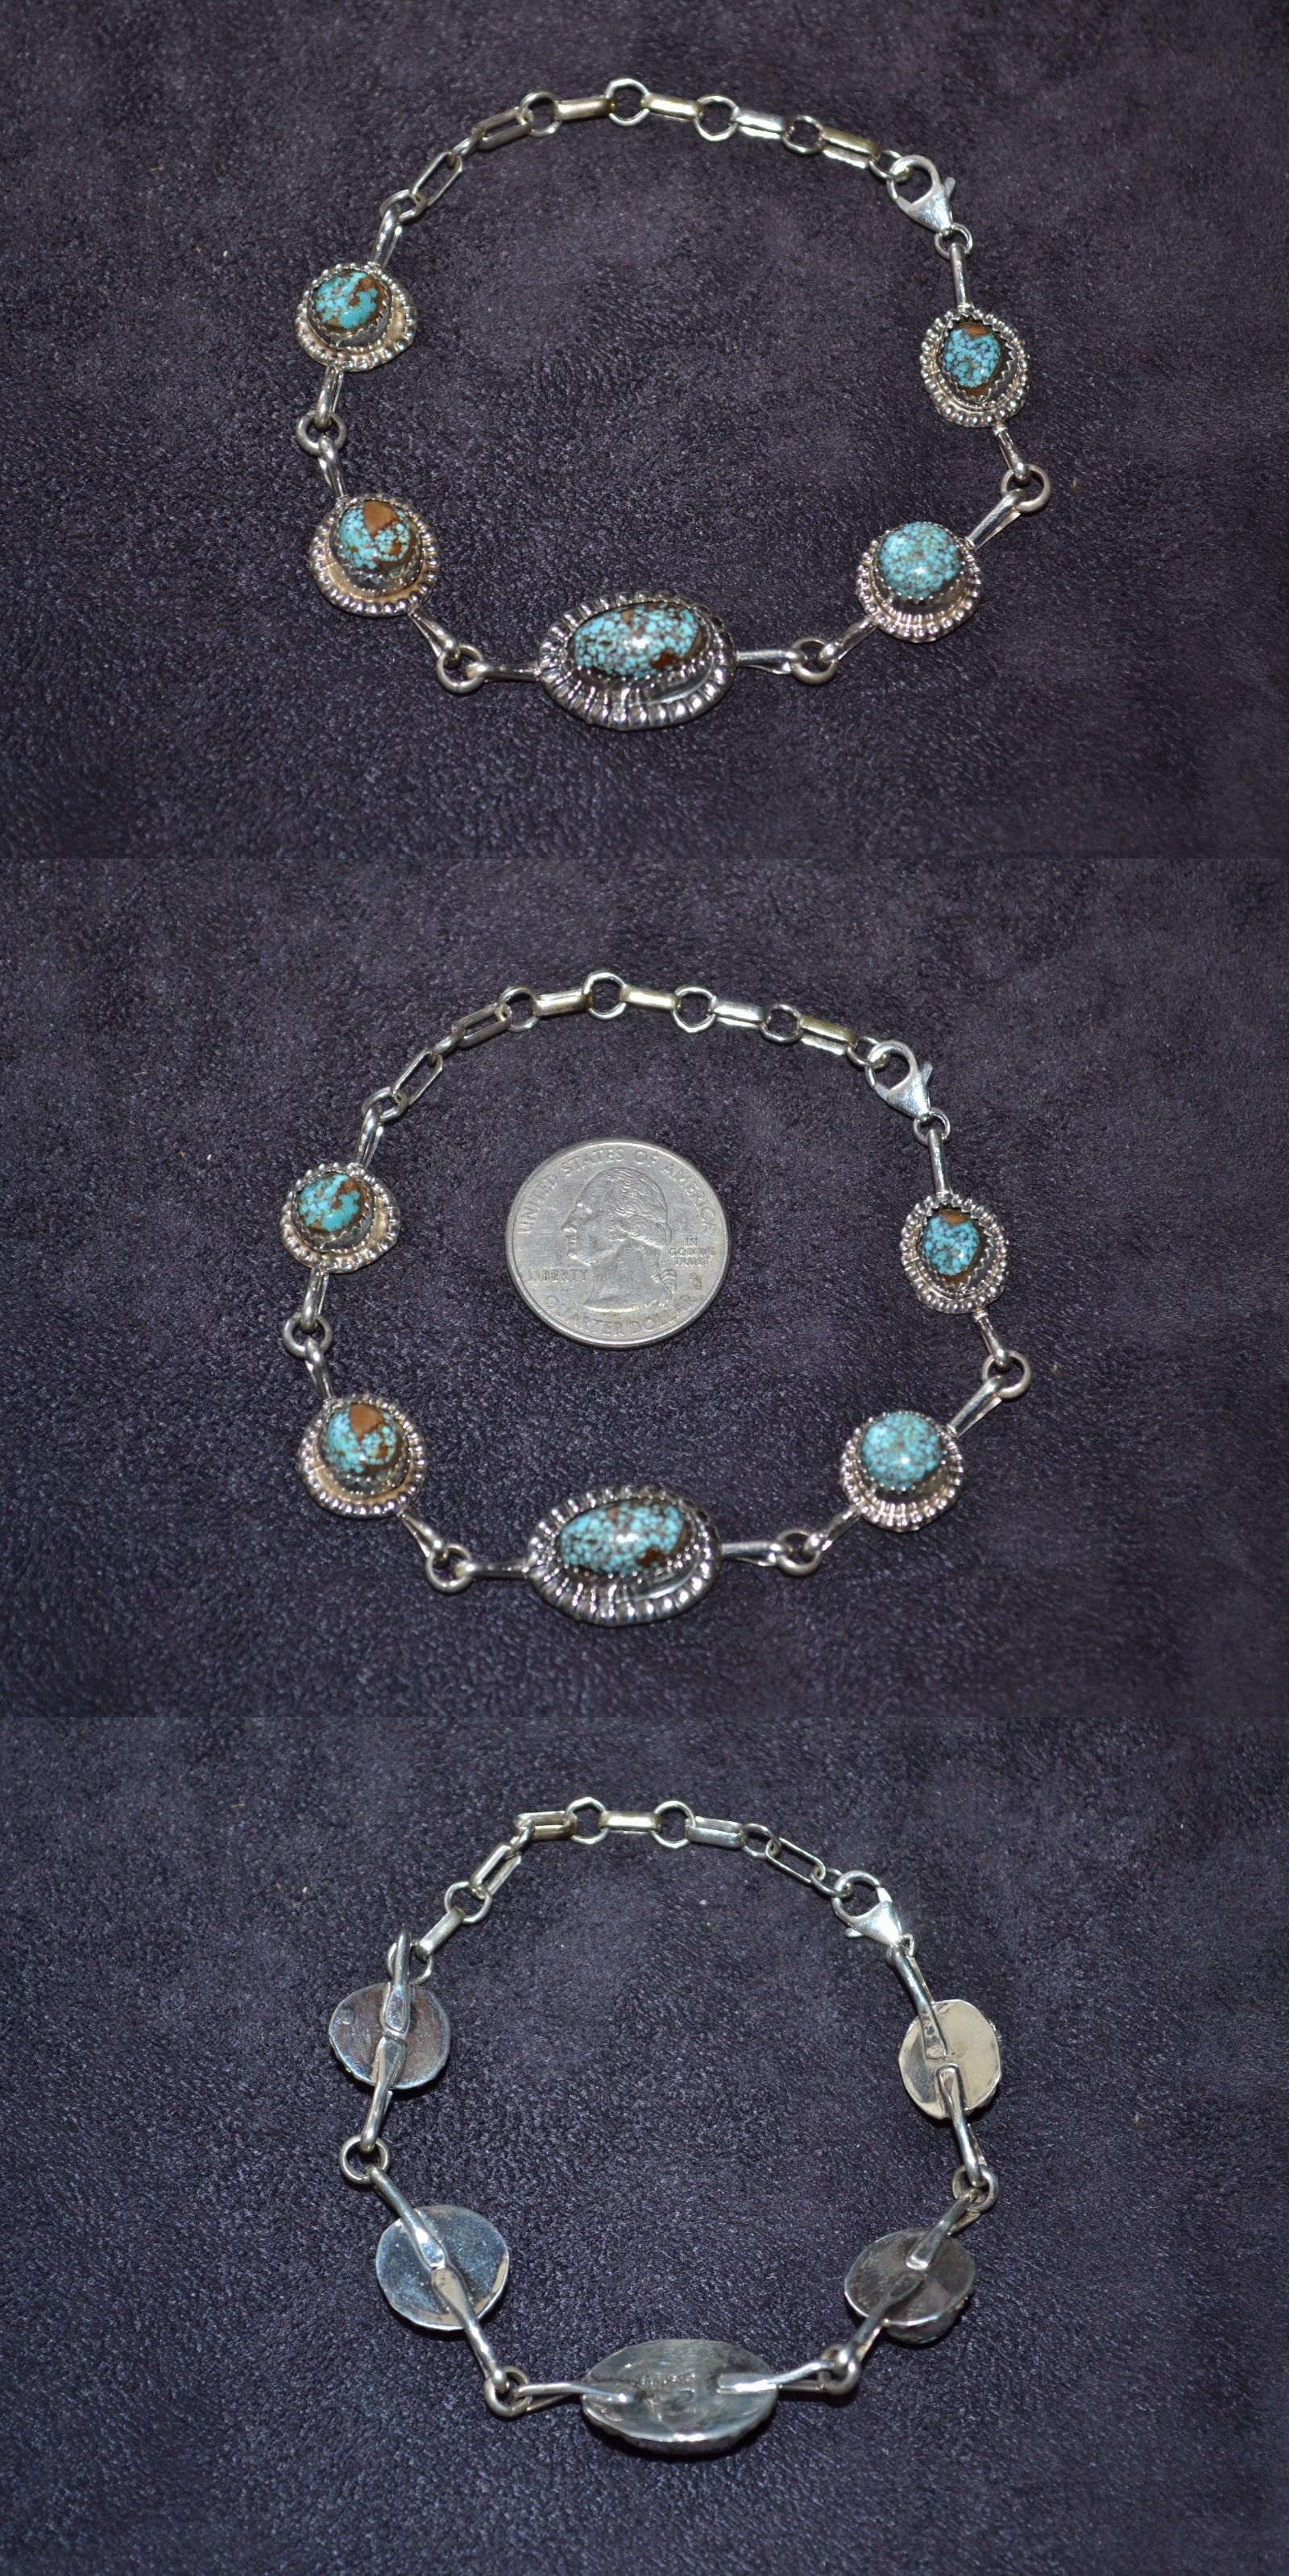 Southwestern 164301: Handmade Sterling Silver And Turquoise Anklet -> BUY IT NOW ONLY: $52.5 on eBay!